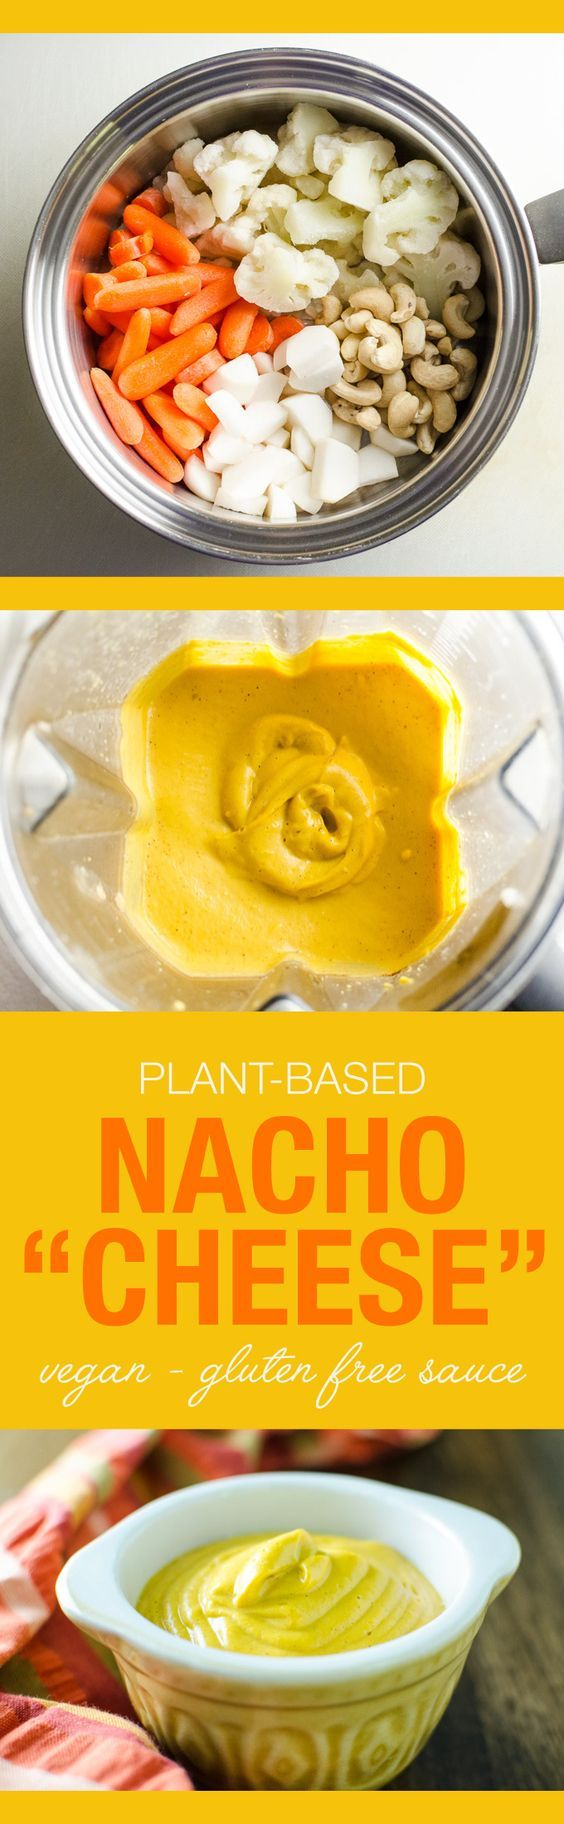 Plant-Based Nacho Cheese Sauce - creamy spicy and delicious - quick and easy blender recipe - vegan and gluten free |Plant-Based Nacho Cheese Sauce - creamy spicy and delicious - quick and easy blender recipe - vegan and gluten free |VeggiePrimer